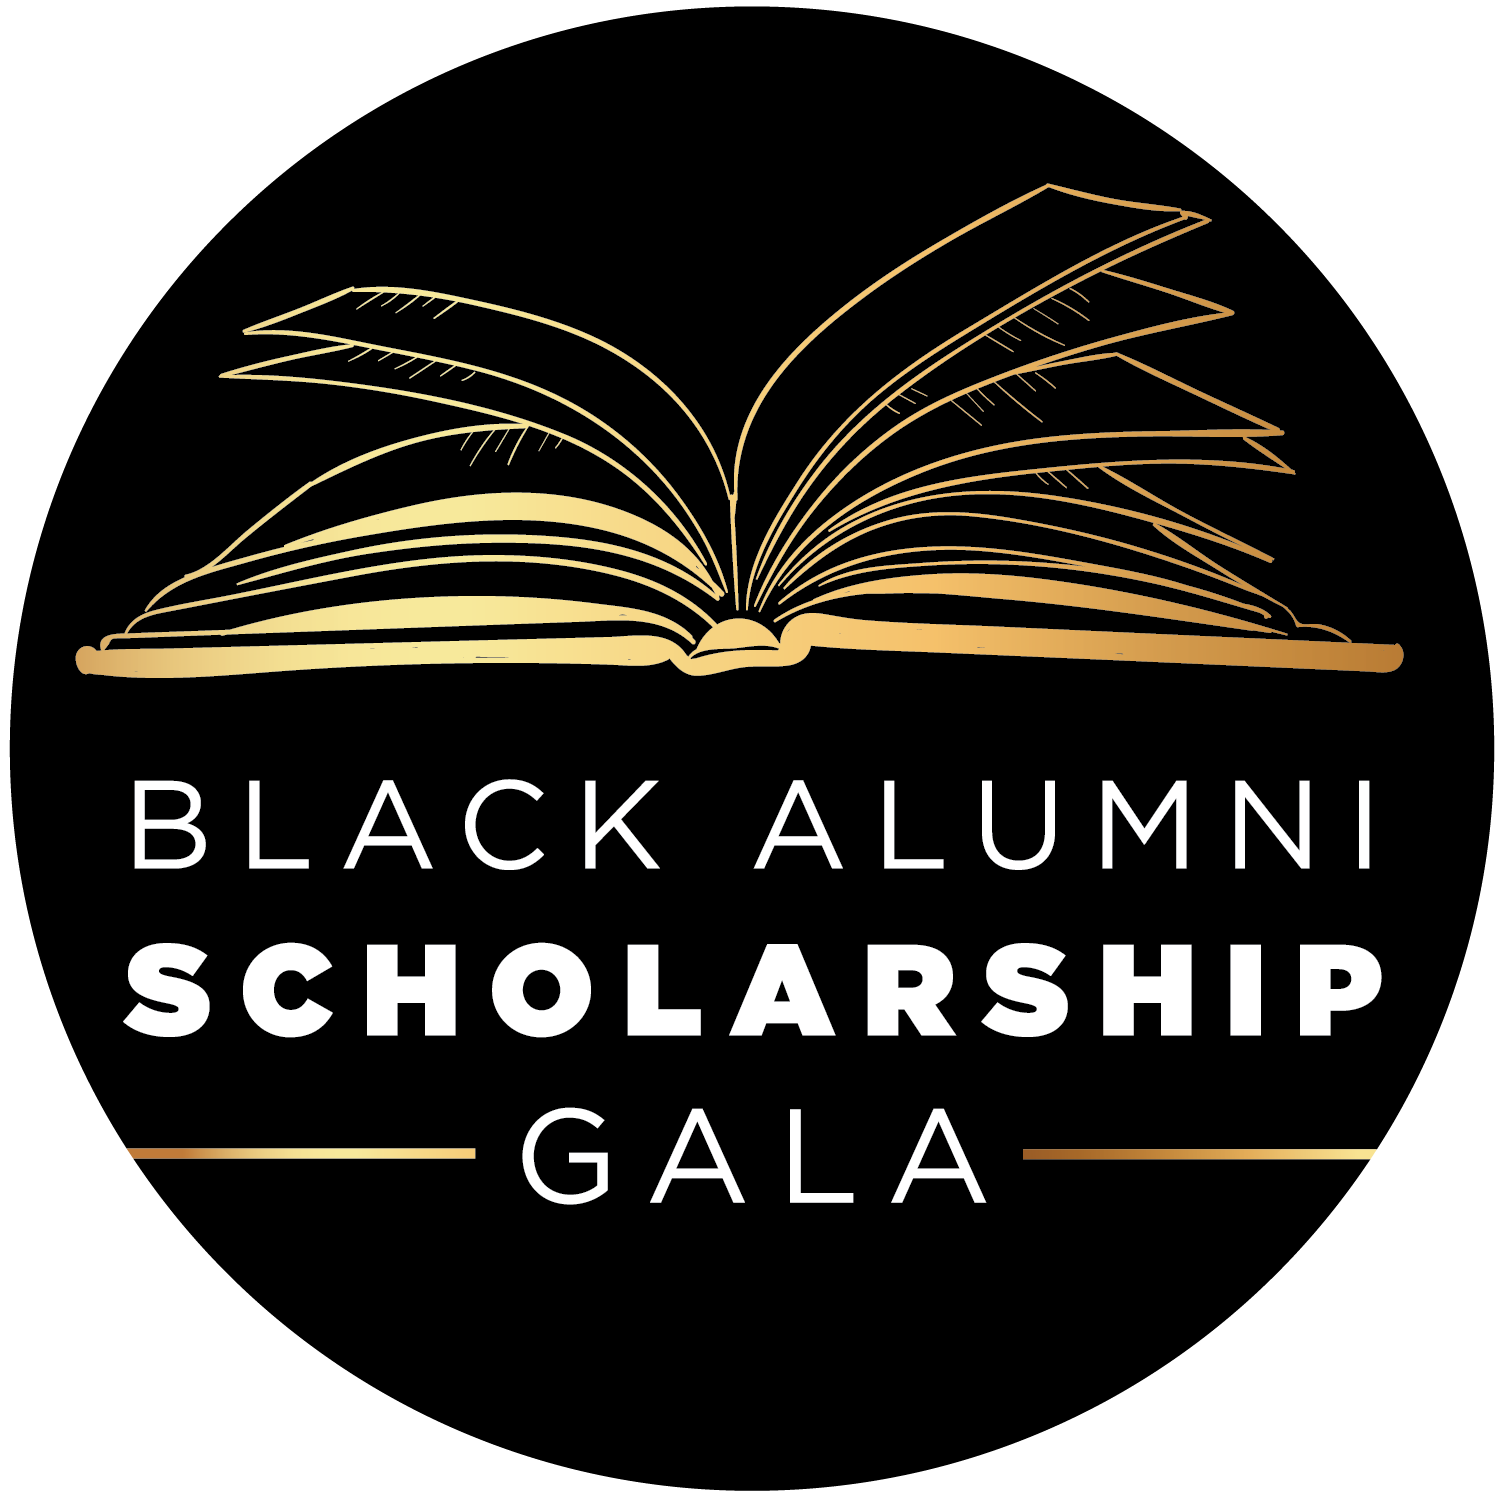 Logo for the Black Alumni Scholarship Gala showing a stylized open book